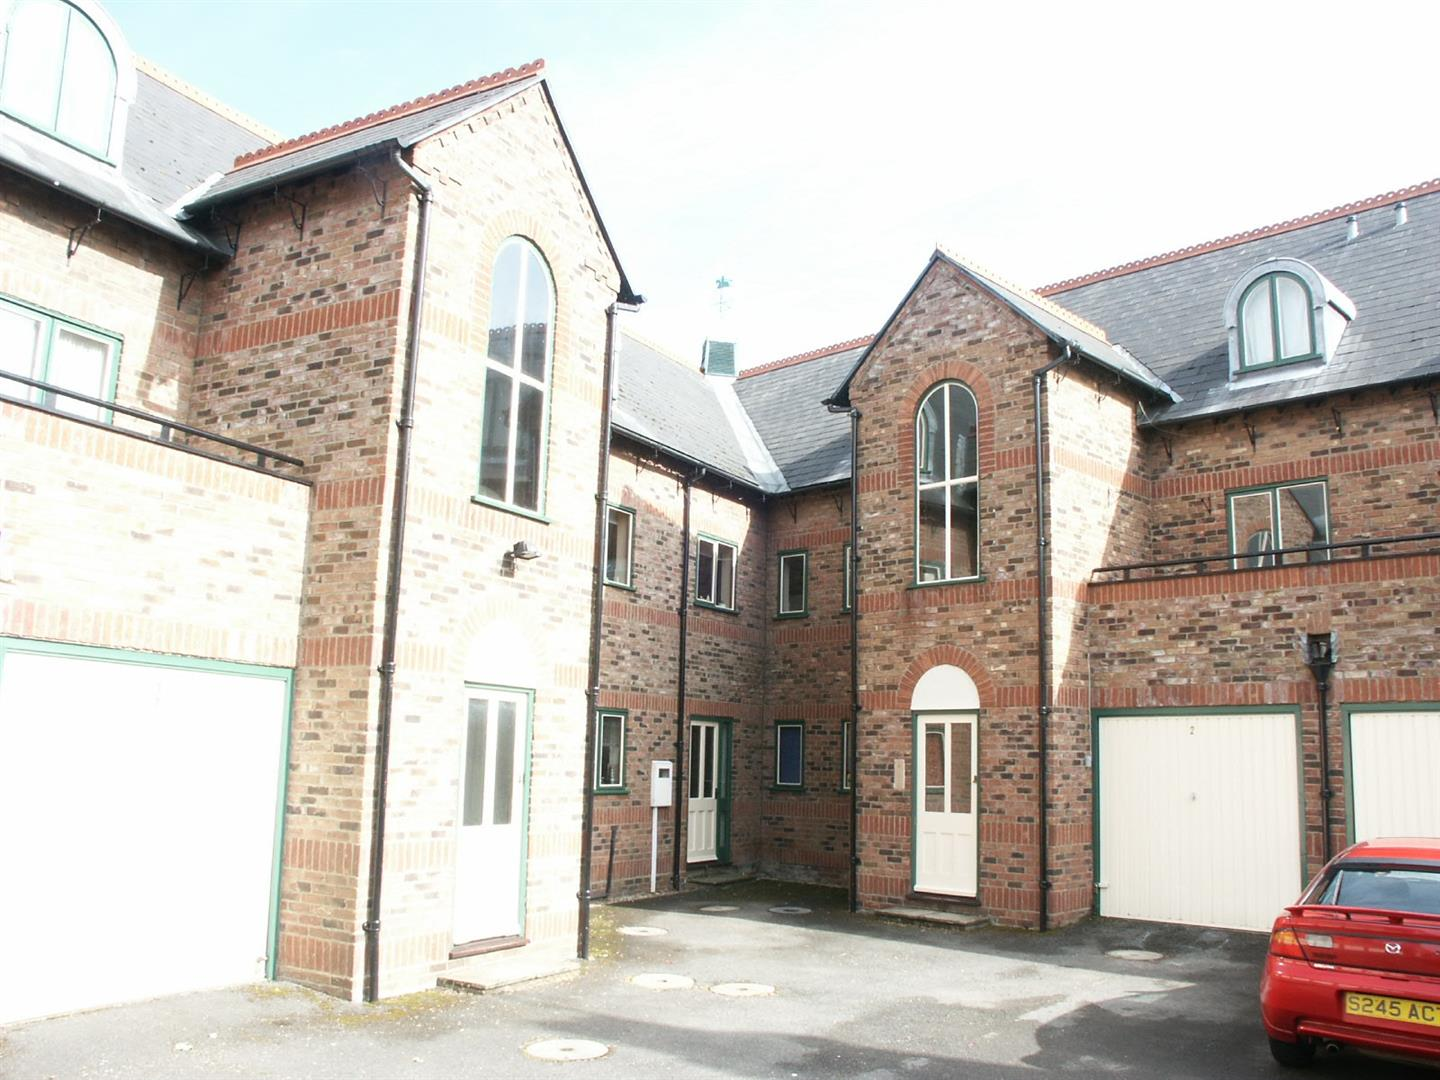 2 bed flat to rent in Spalding, PE12 9RL 0